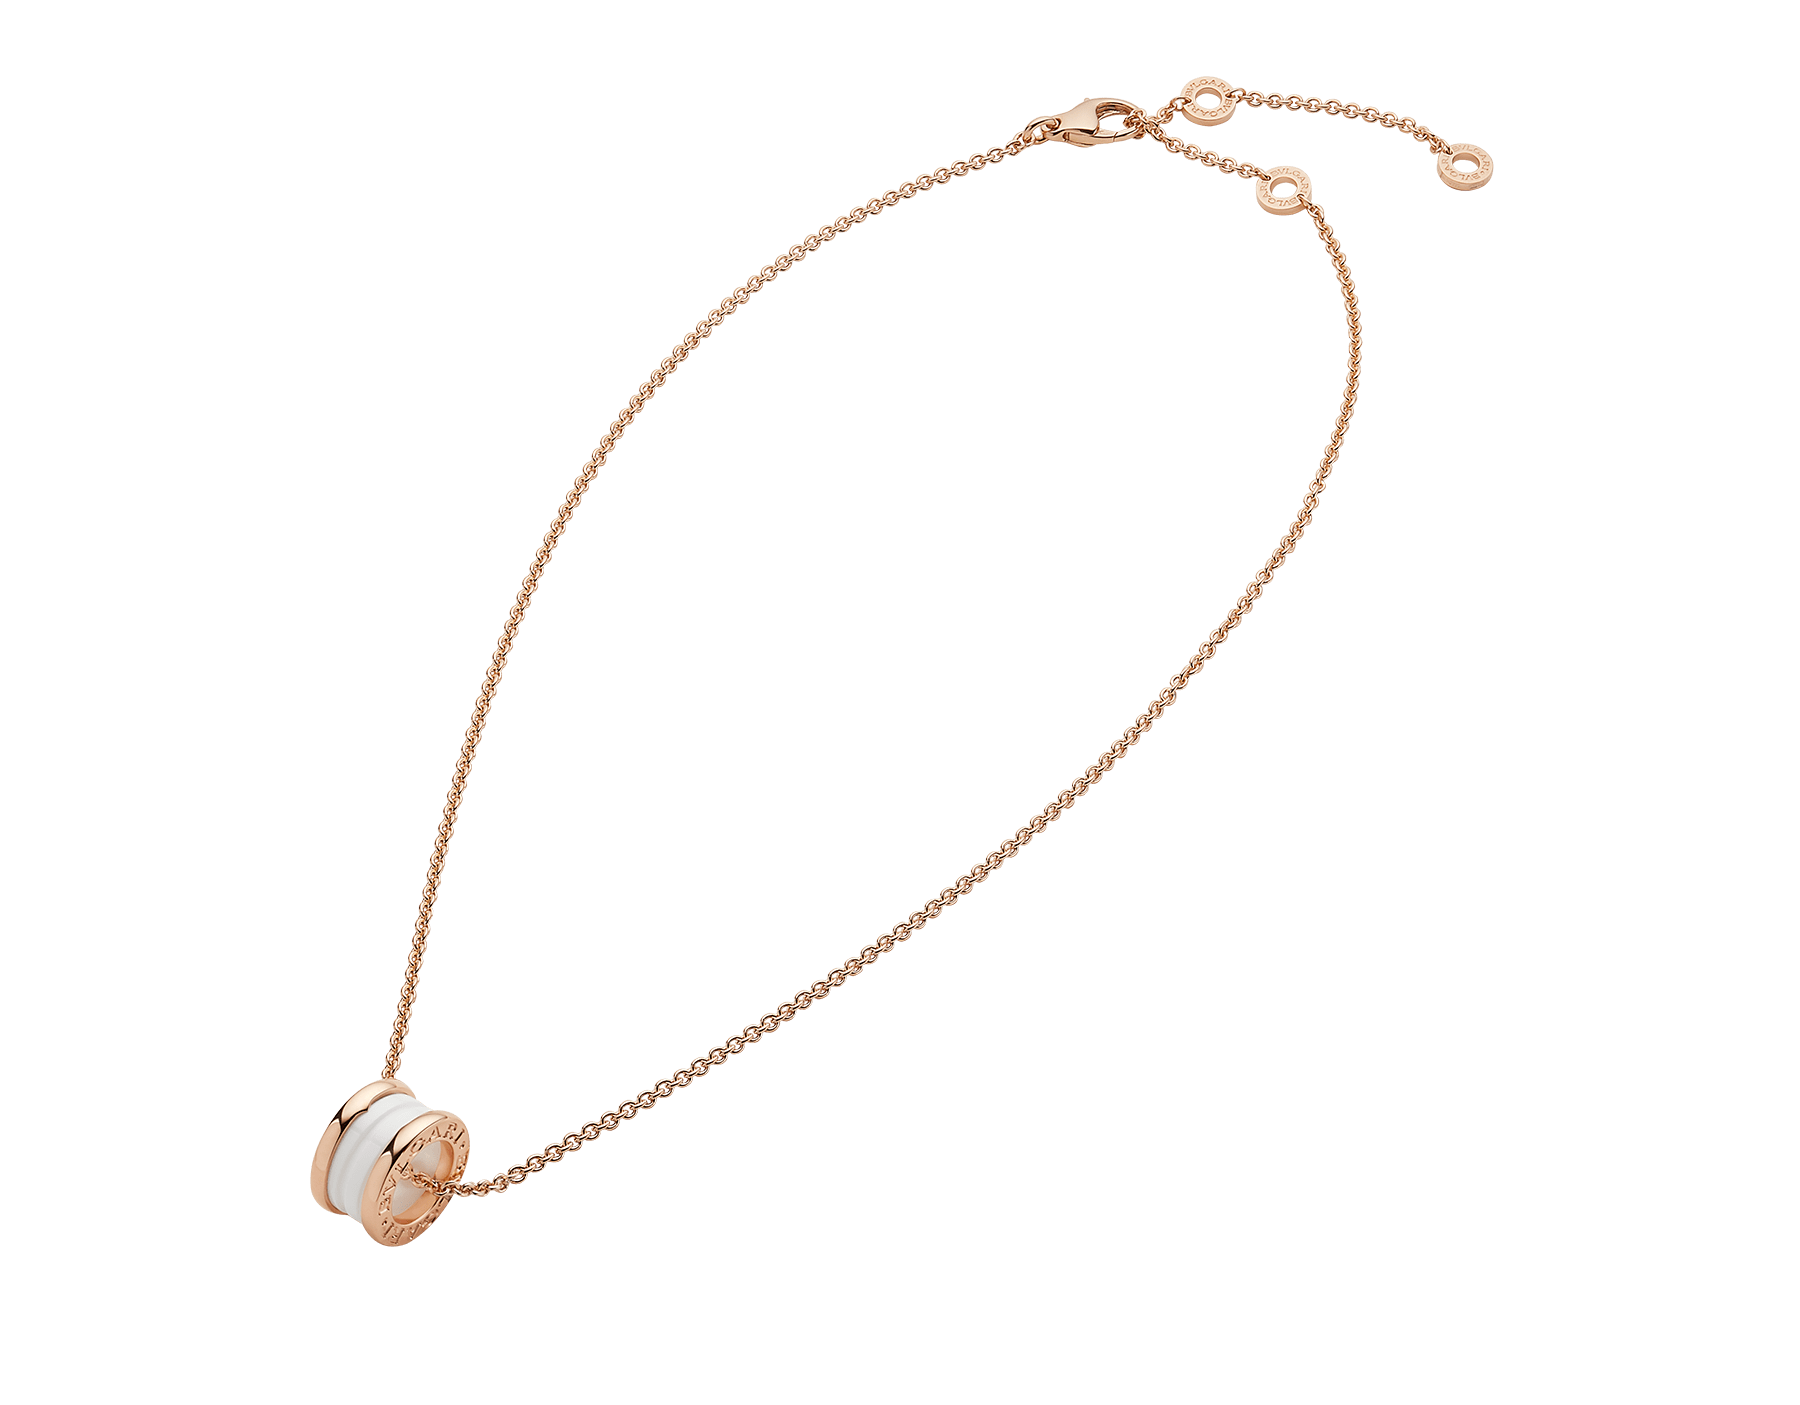 B.zero1 necklace with 18 kt rose gold chain and with 18 kt rose gold and white ceramic pendant. 346082 image 2